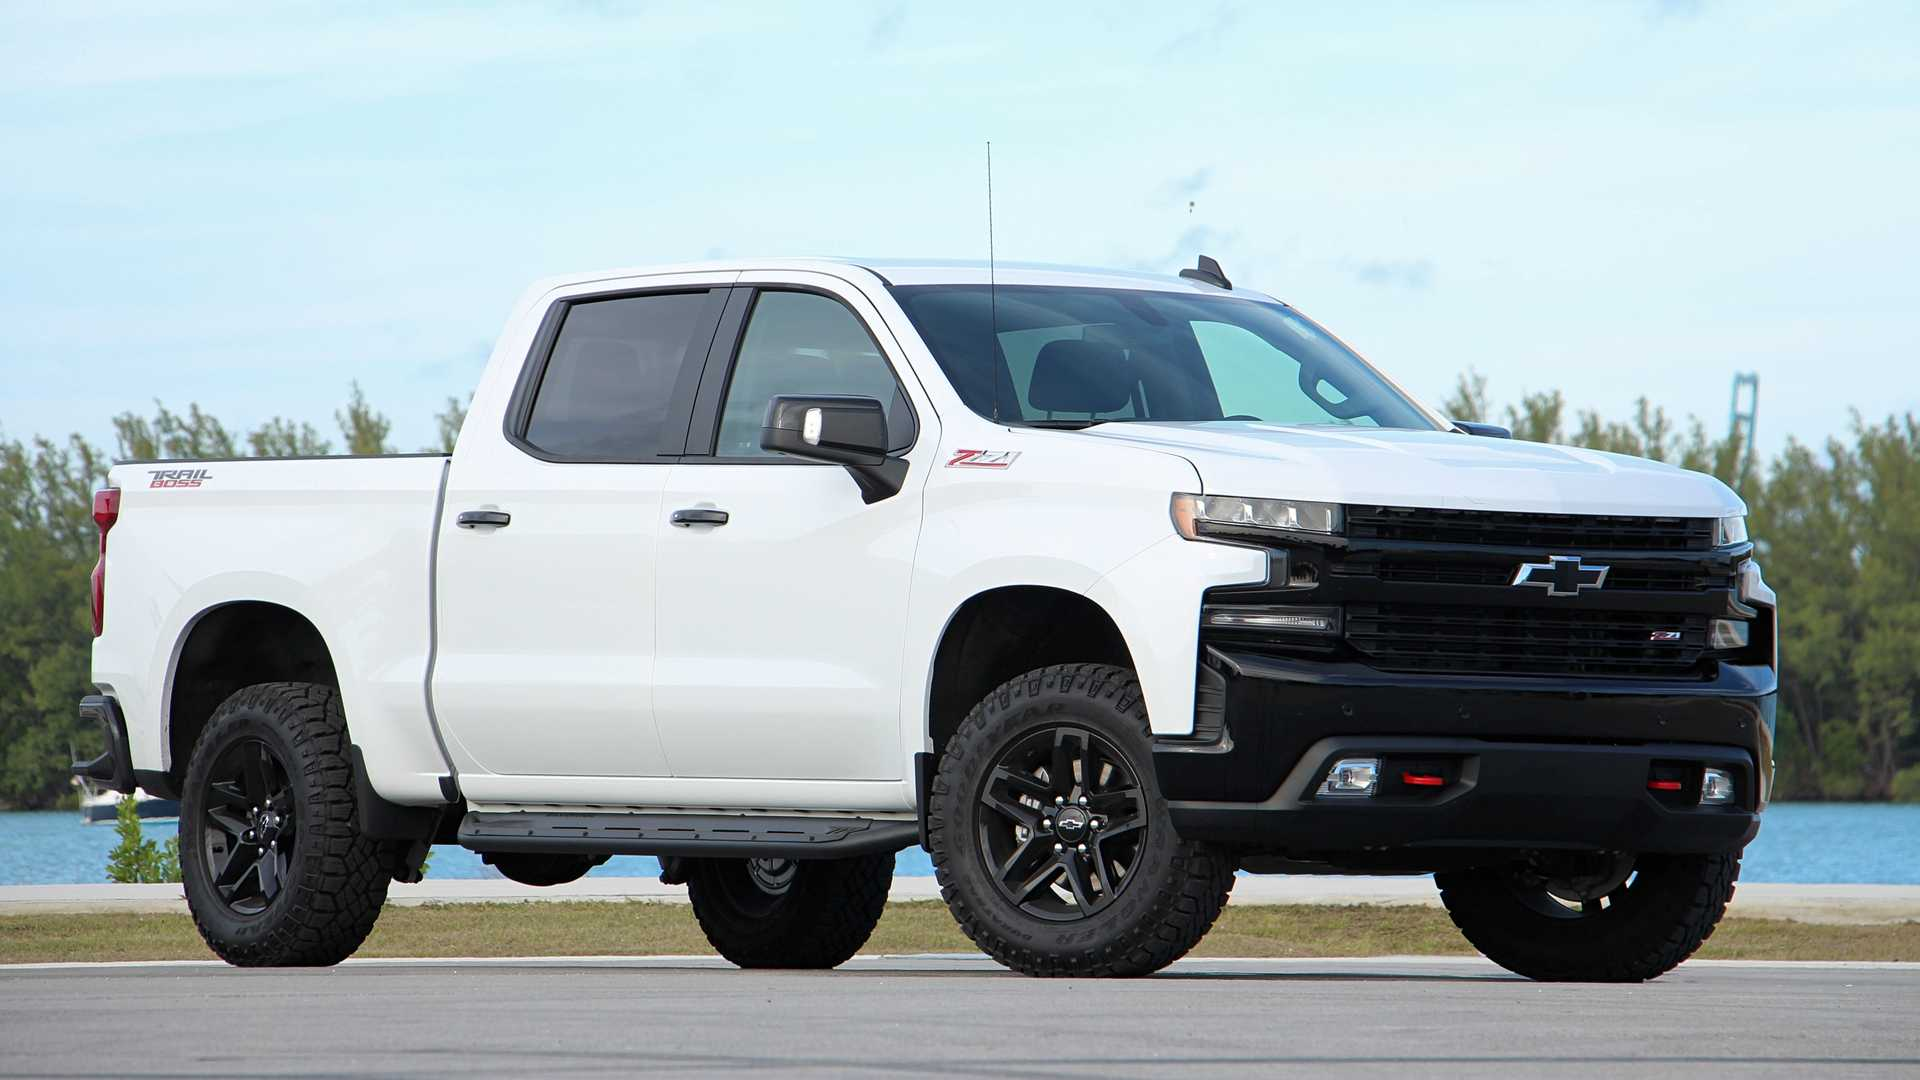 34 New New Gmc 2019 Silverado Review Redesign and Concept with New Gmc 2019 Silverado Review